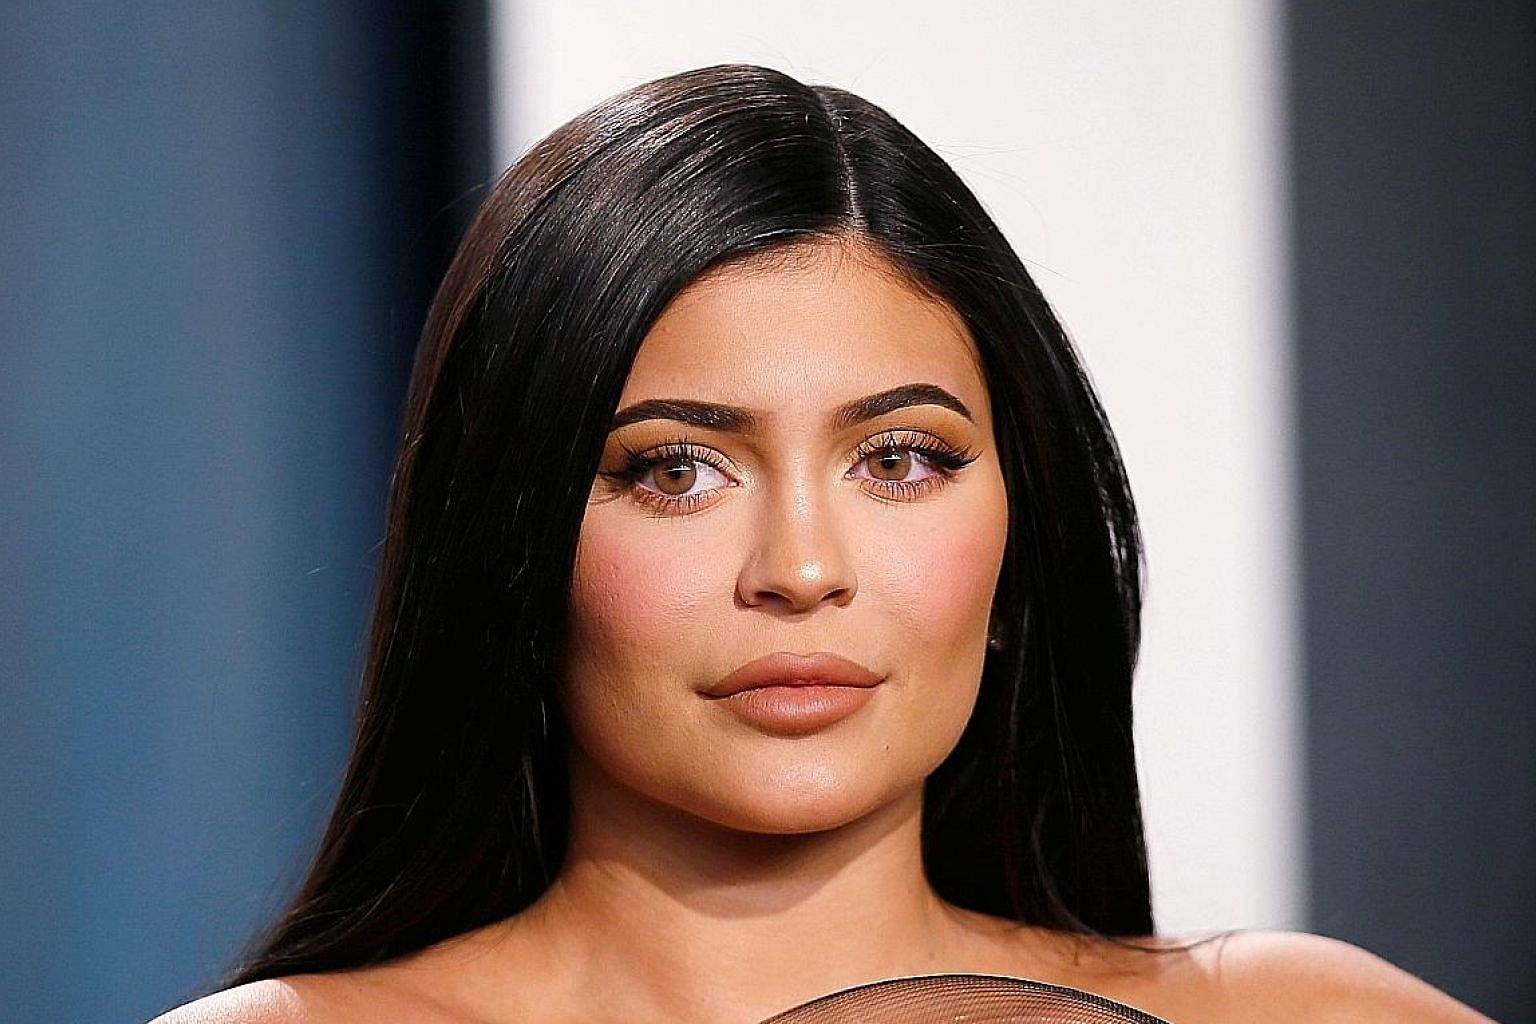 Forbes now estimates the net worth of reality TV star Kylie Jenner at around US$900 million.